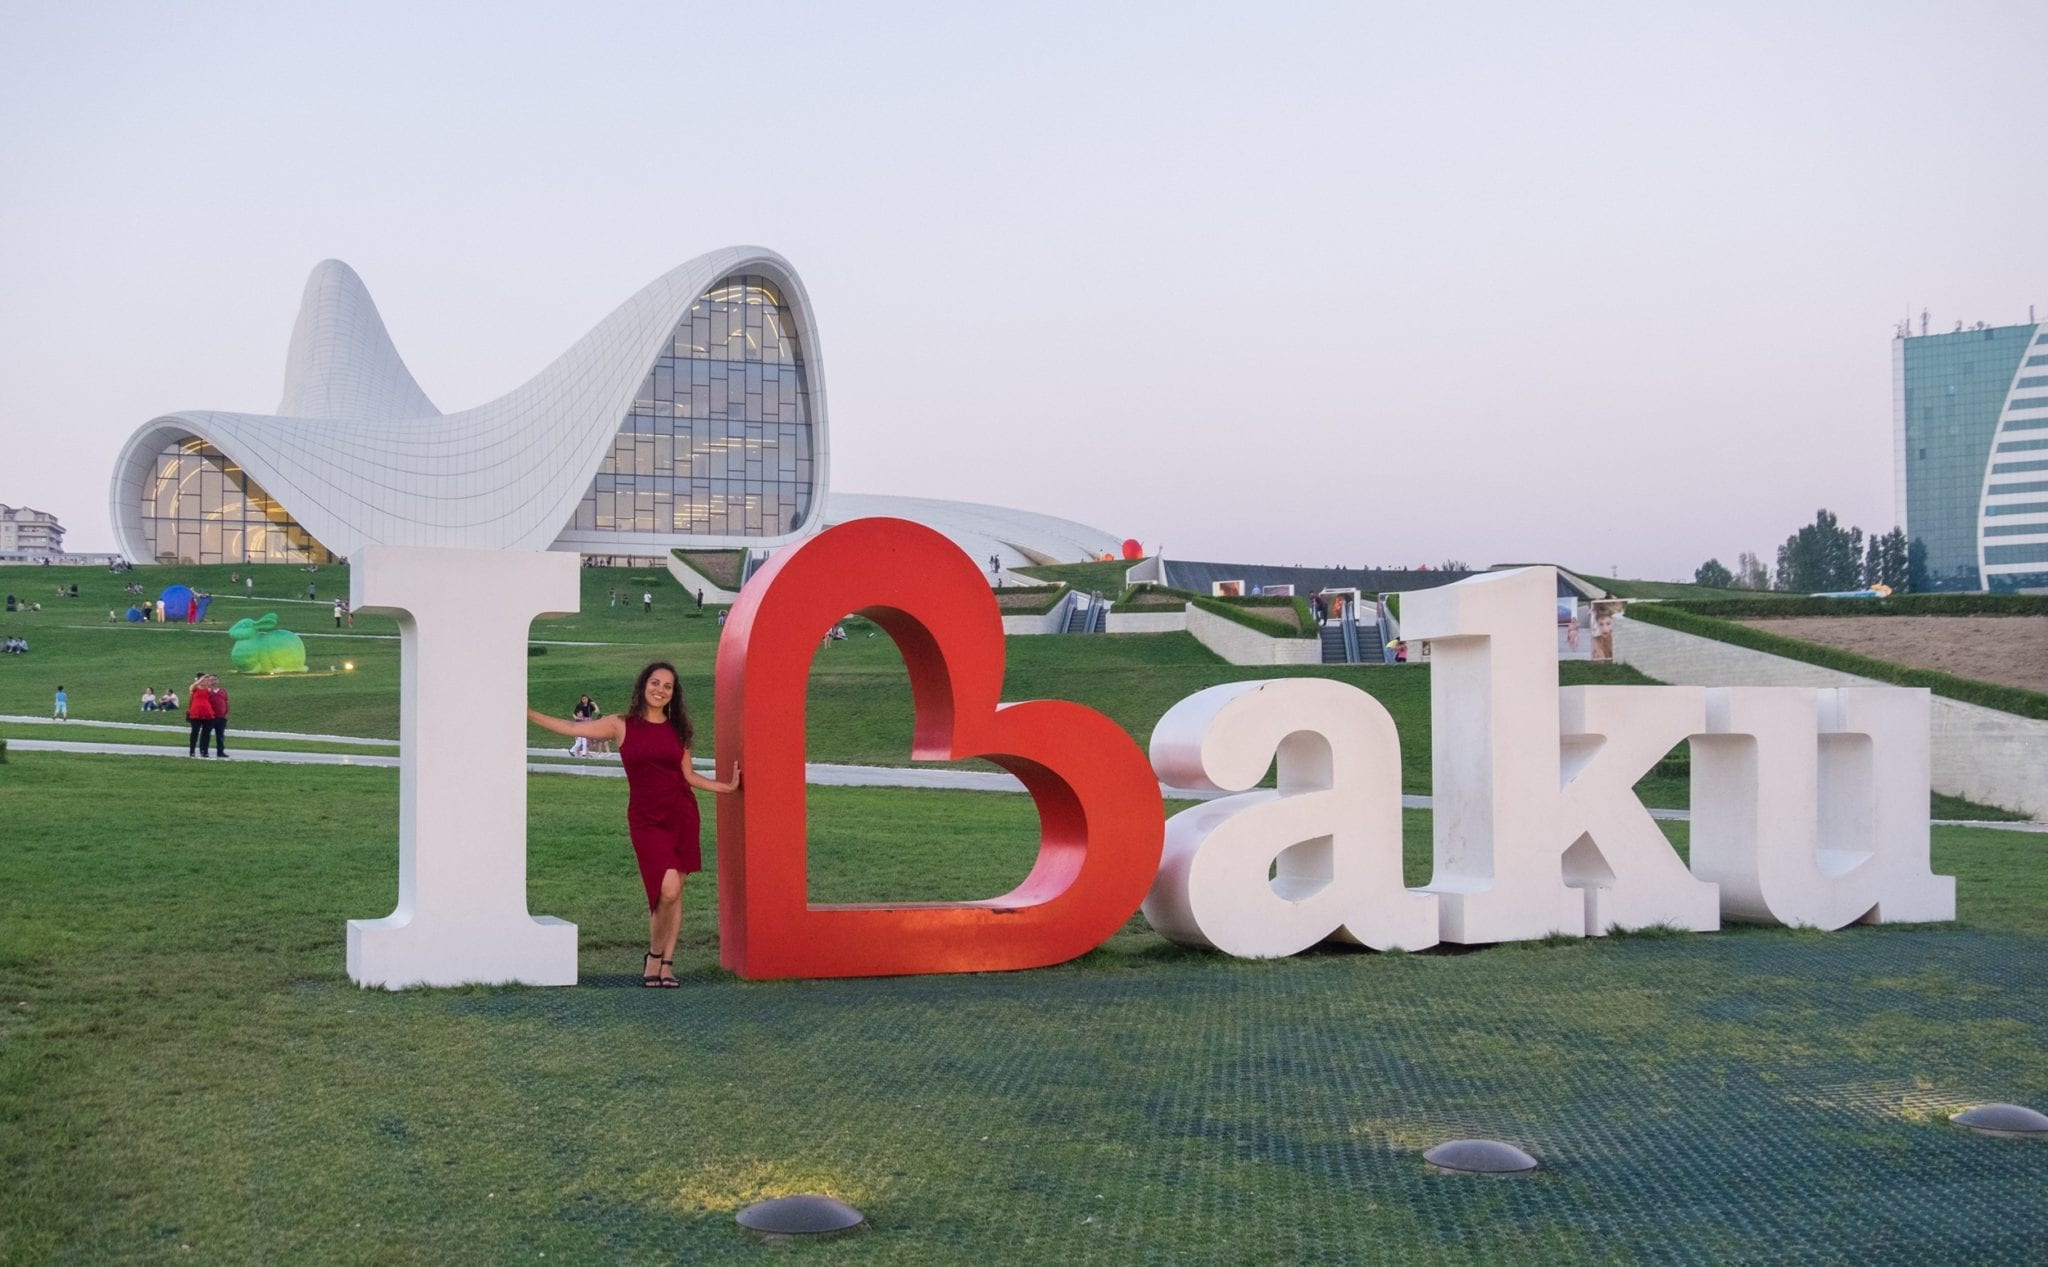 """Kate stands in the middle of an """"I Love Baku"""" sign where the B is shaped like a heart. In the background is the swooping white roof of the Heydar Aliyev Center."""